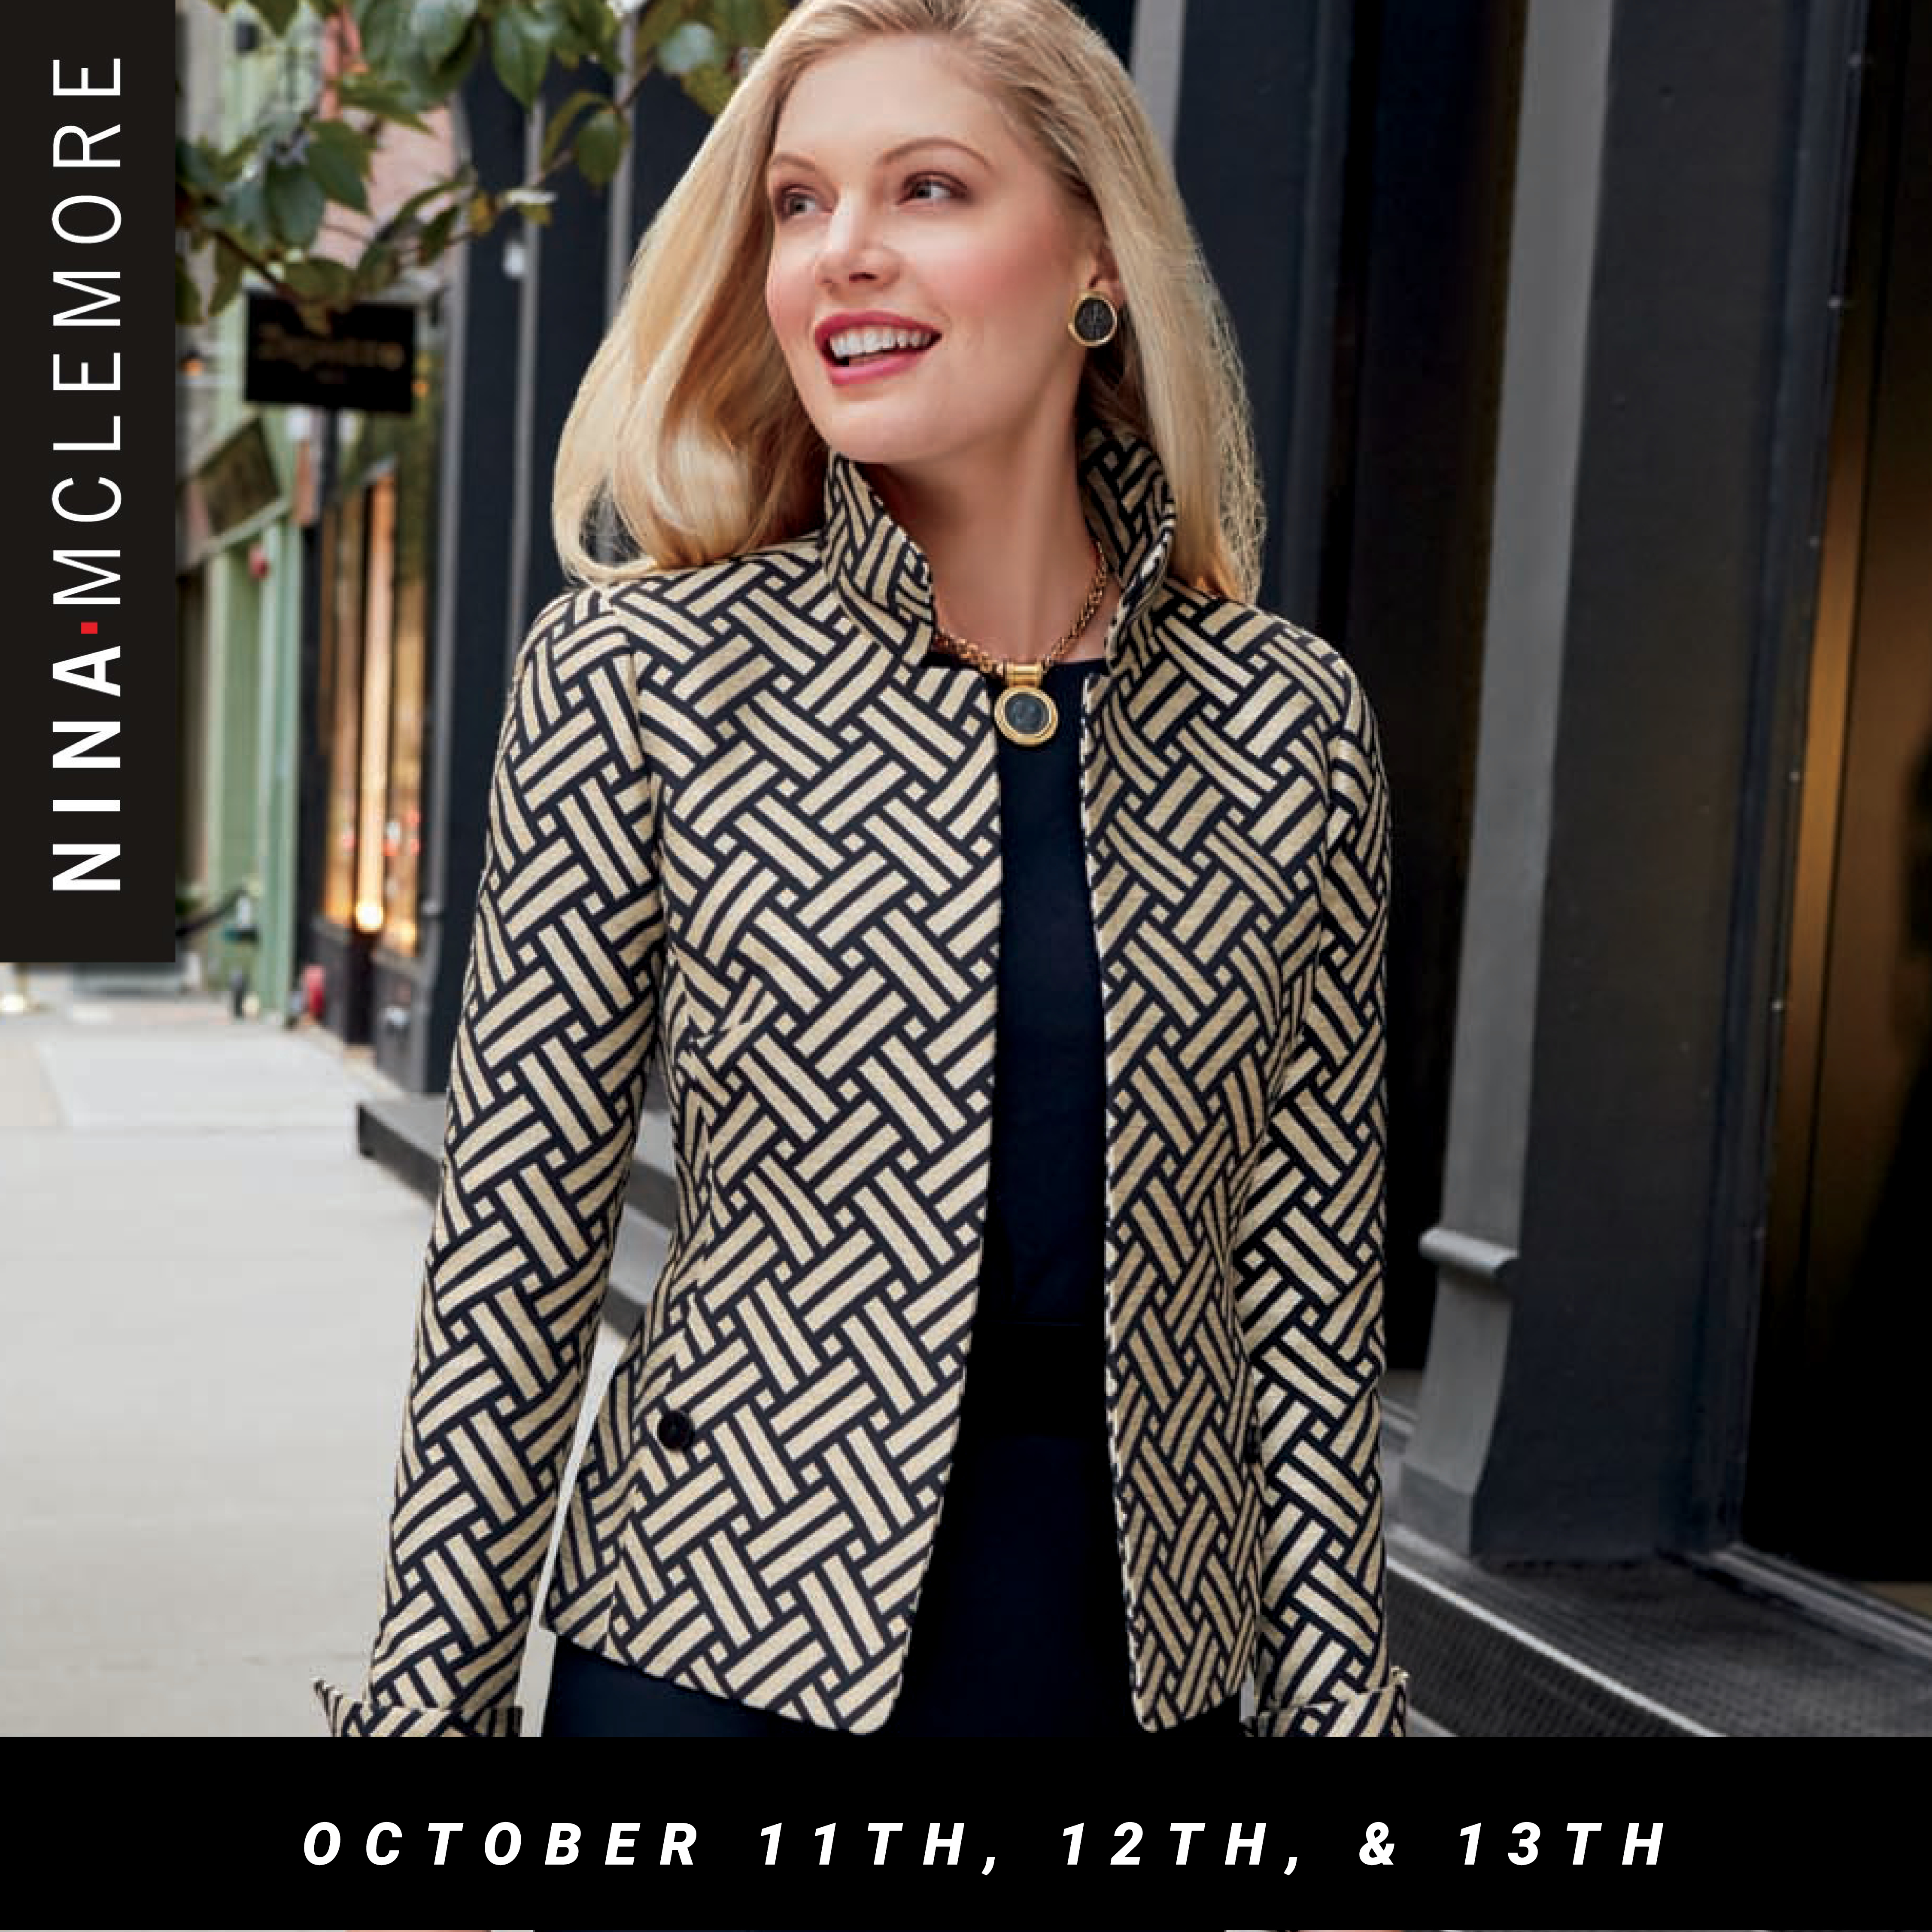 Nina McLemore Holiday Trunk Show October 11th, 12th, and 13th